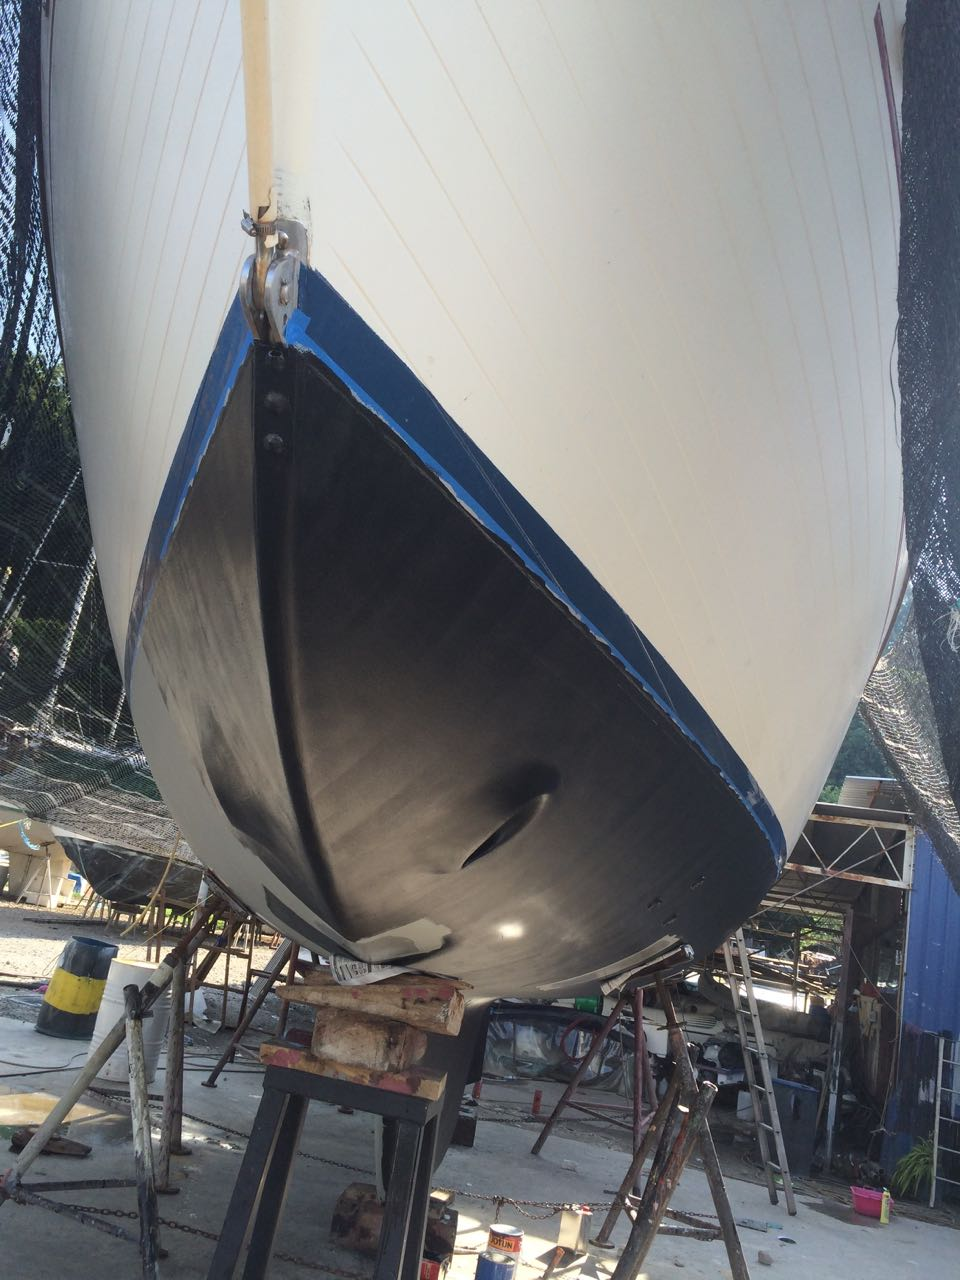 So it looks like we are having black Antifoul, (Stealth mode in  operation)